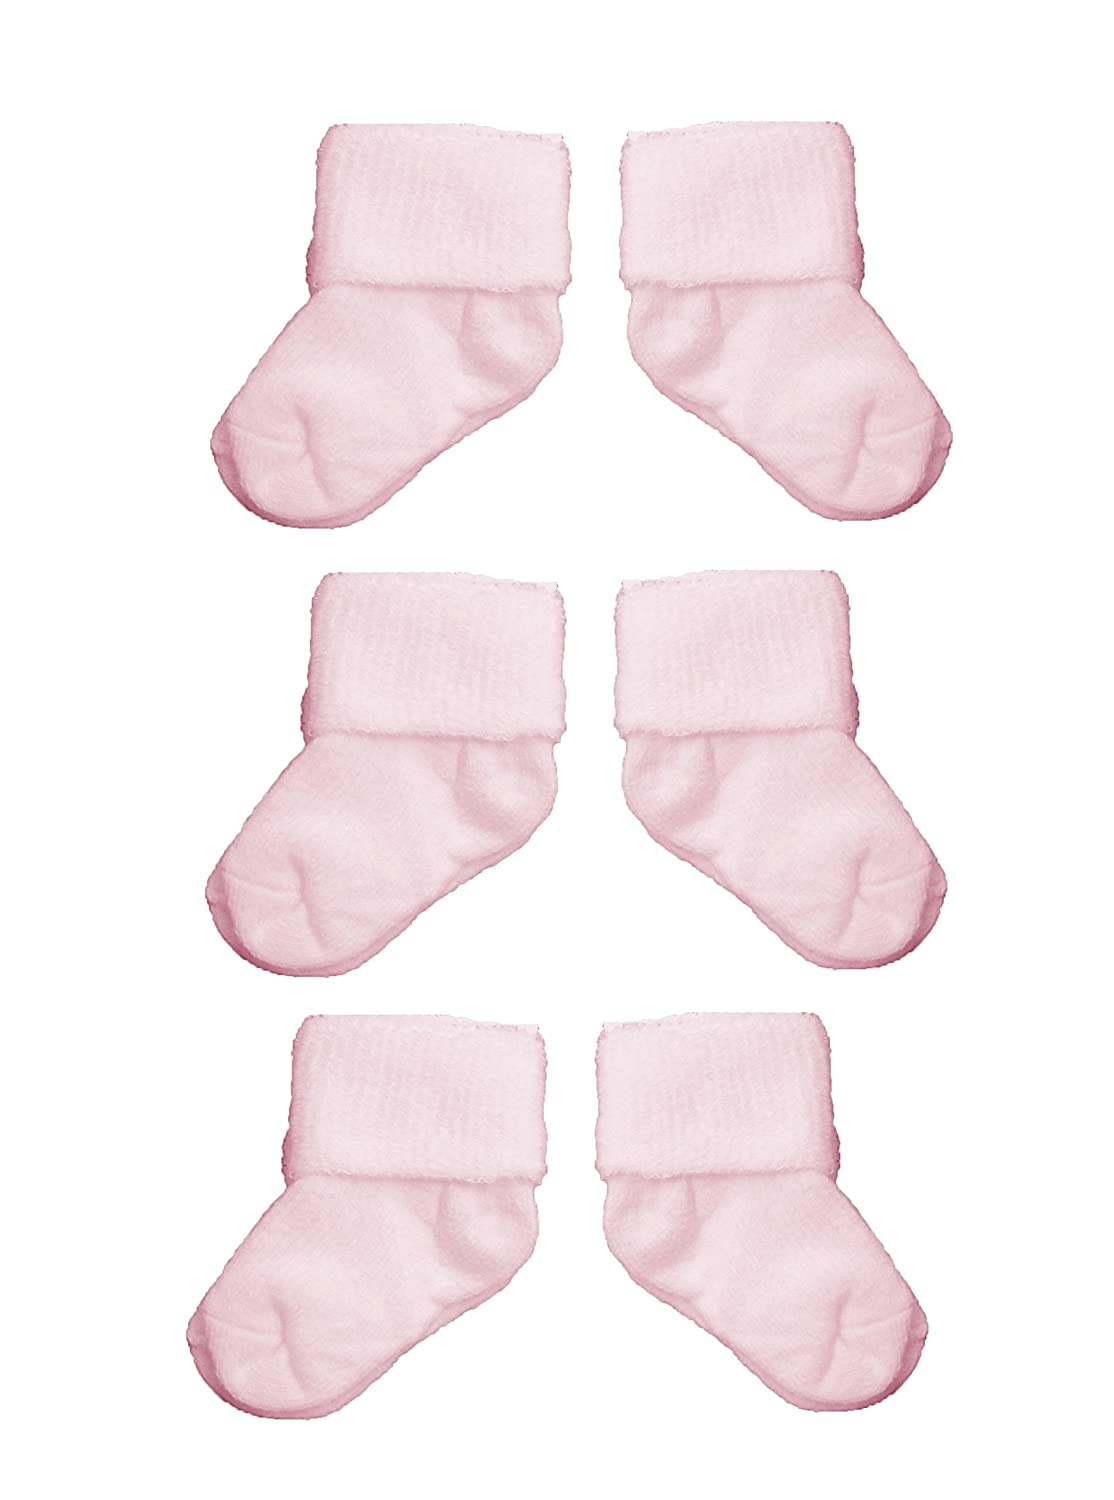 Baby Girls Cute Roll Over Socks 3 PAIRS - Plain Pink (0-3 Months)